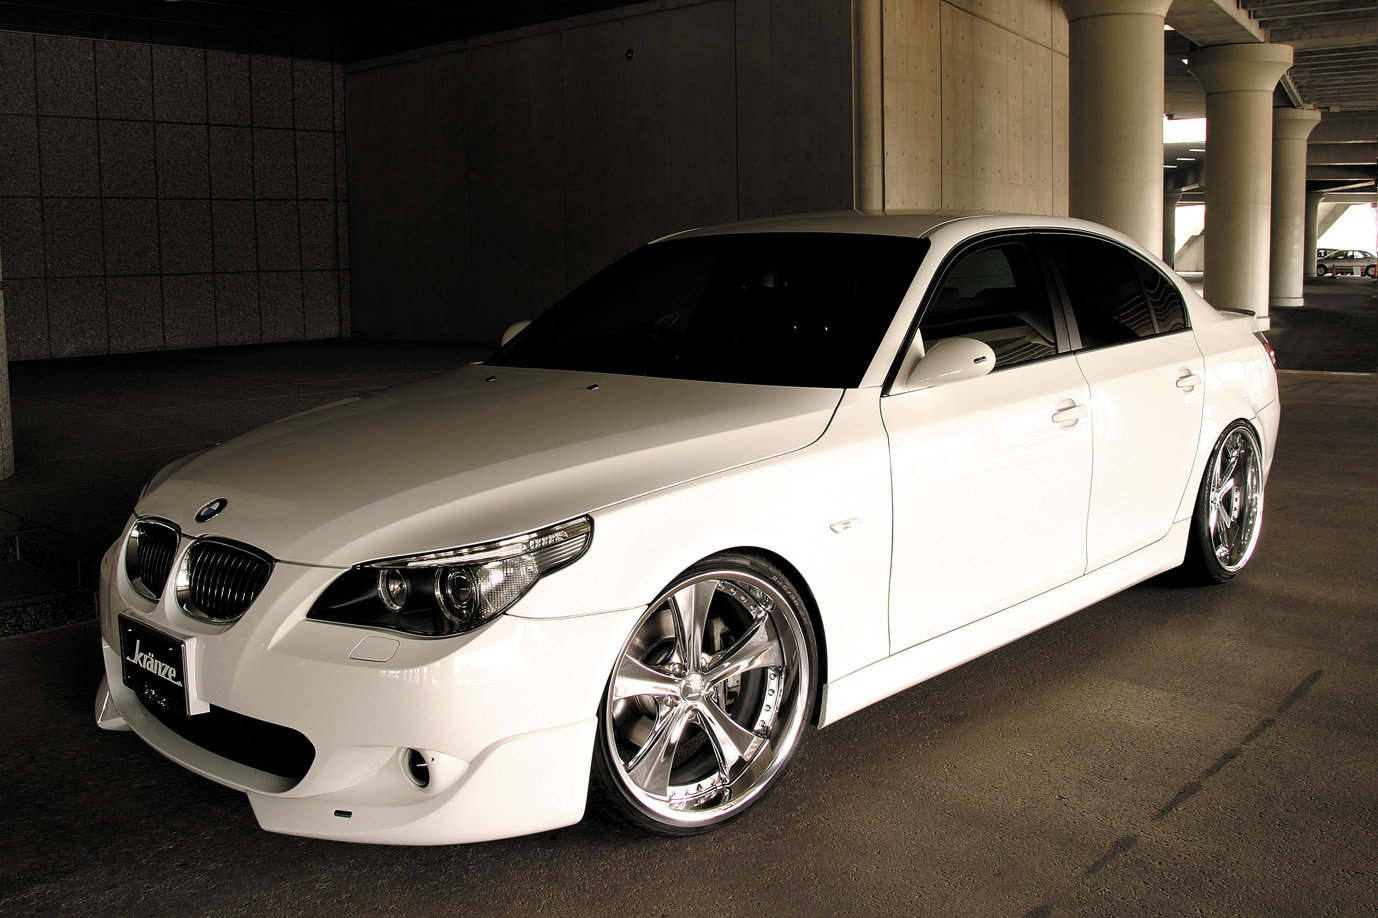 b9be099f6c0debc1 car pictures bmw e60 BMW E60 Tuning